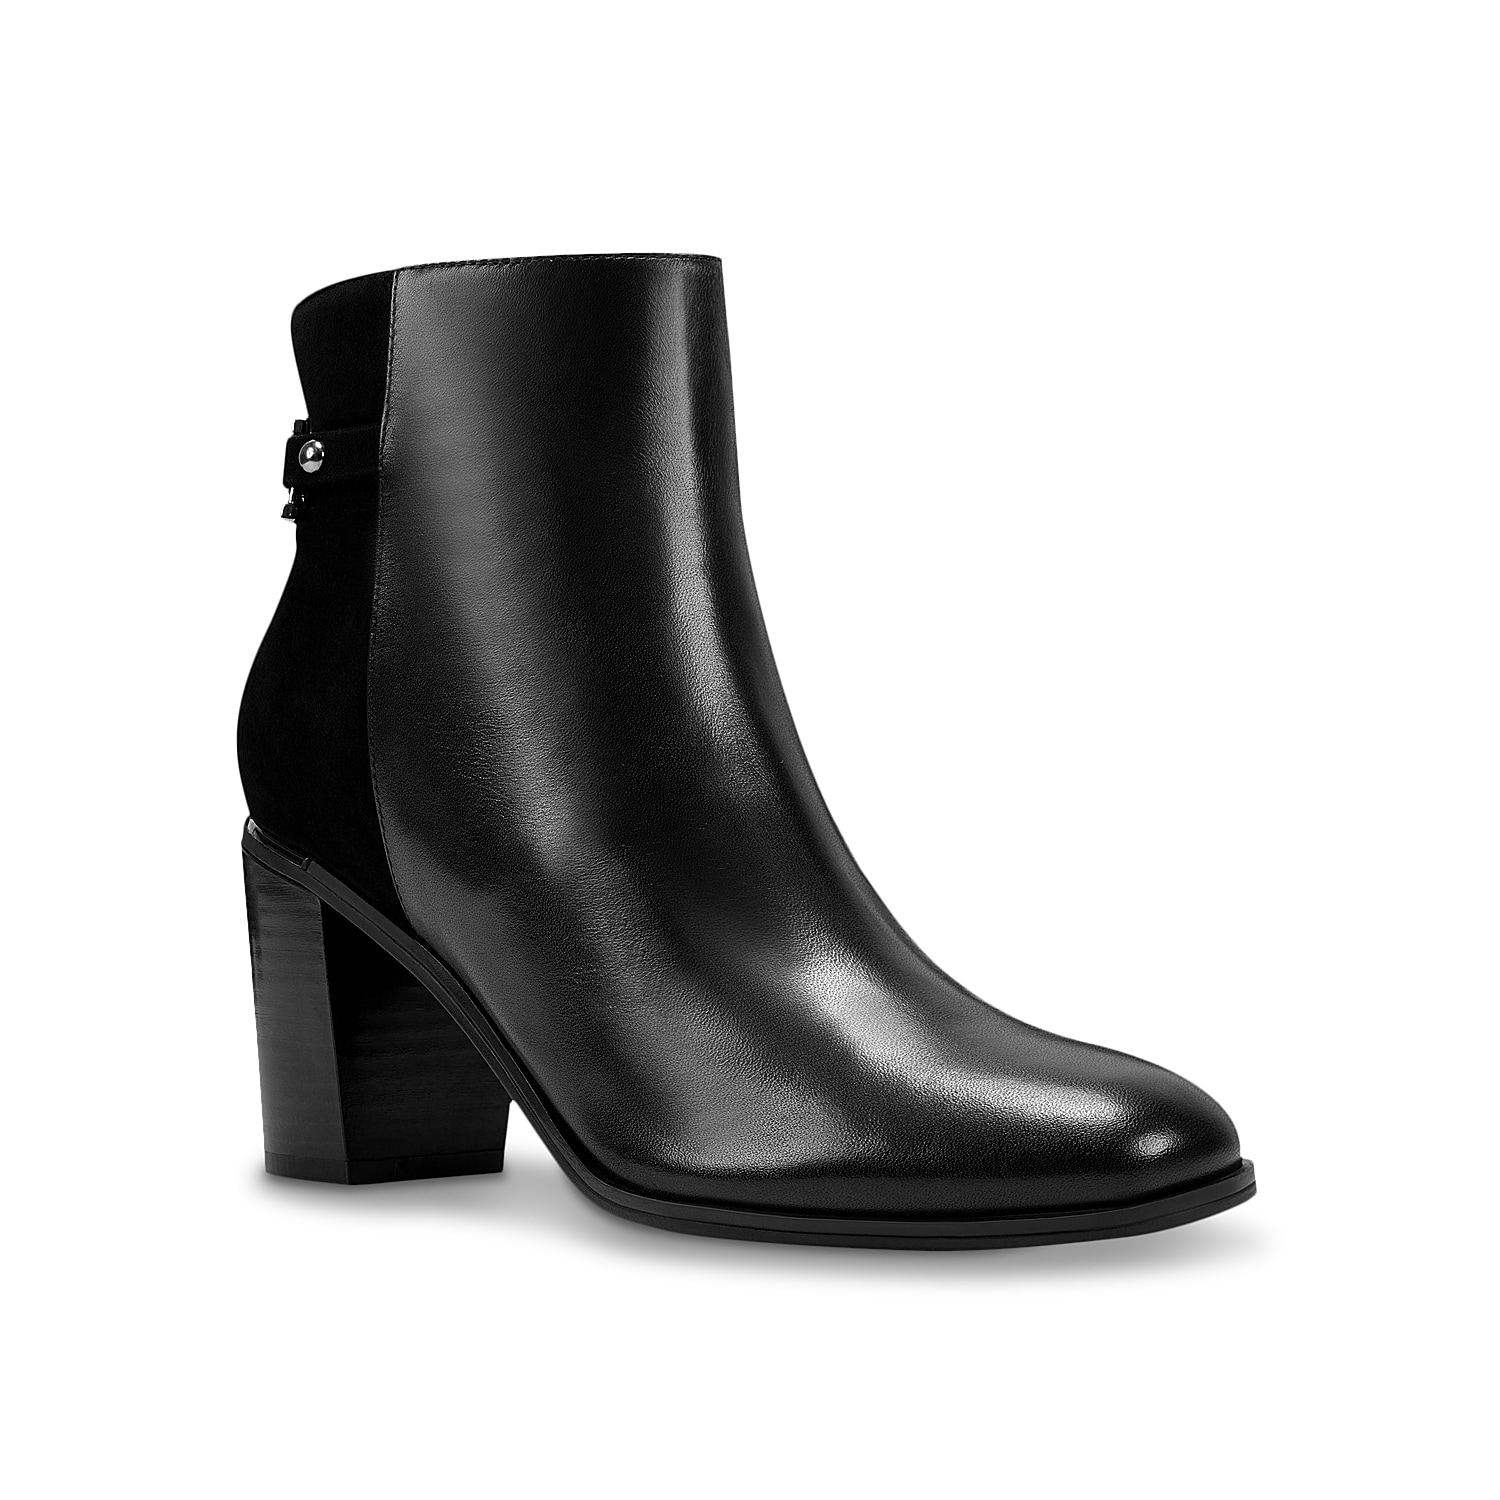 Embolden your ensemble with the Opala bootie from Bandolino. This mixed material ankle boot features a confident-inducing block heel and metal rand detail for added edge. Click here for Boot Measuring Guide.